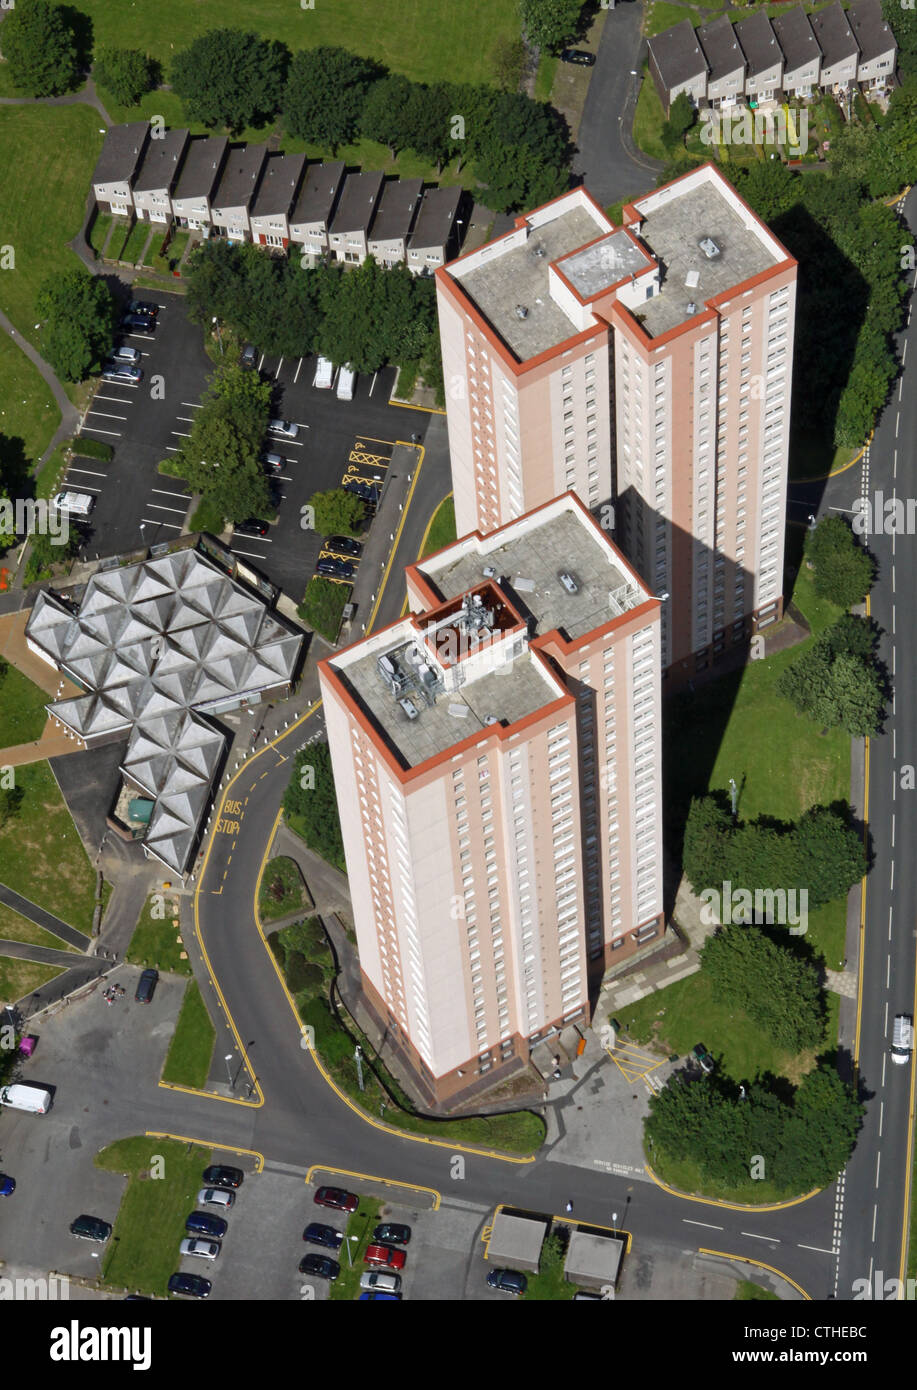 aerial view of council tower blocks in Leeds - Stock Image